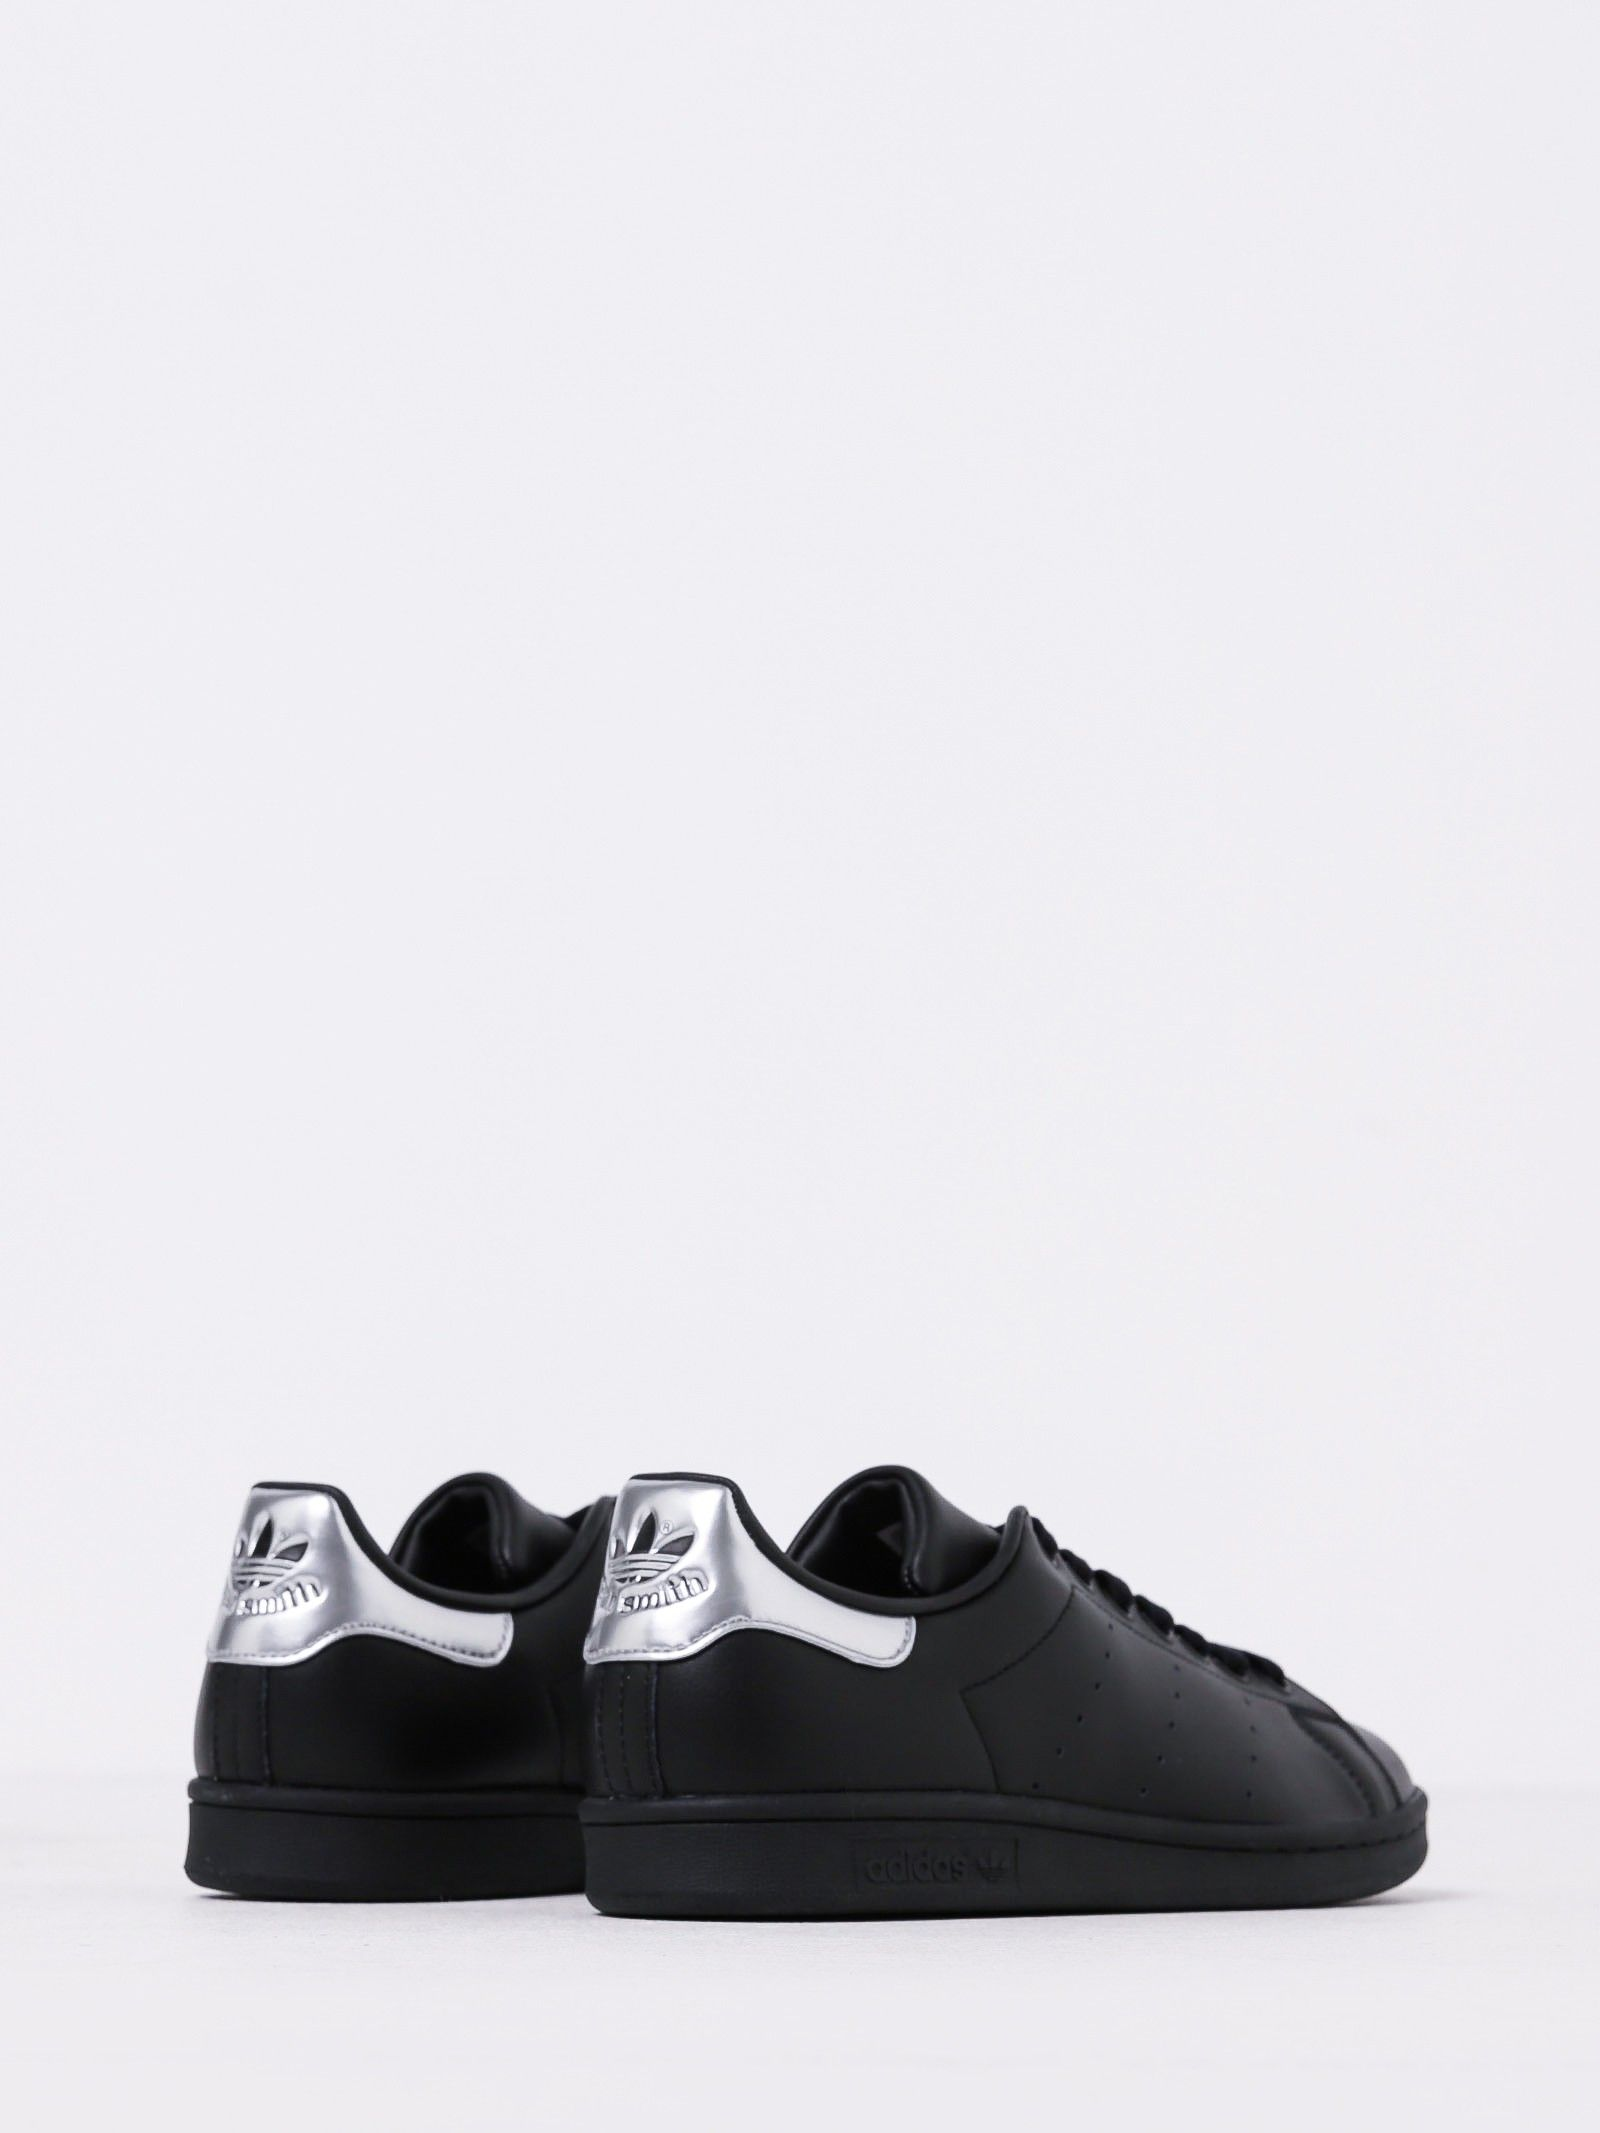 Femme  Stan Smith Sneakers in Noir & Silver Leather | Chaussures